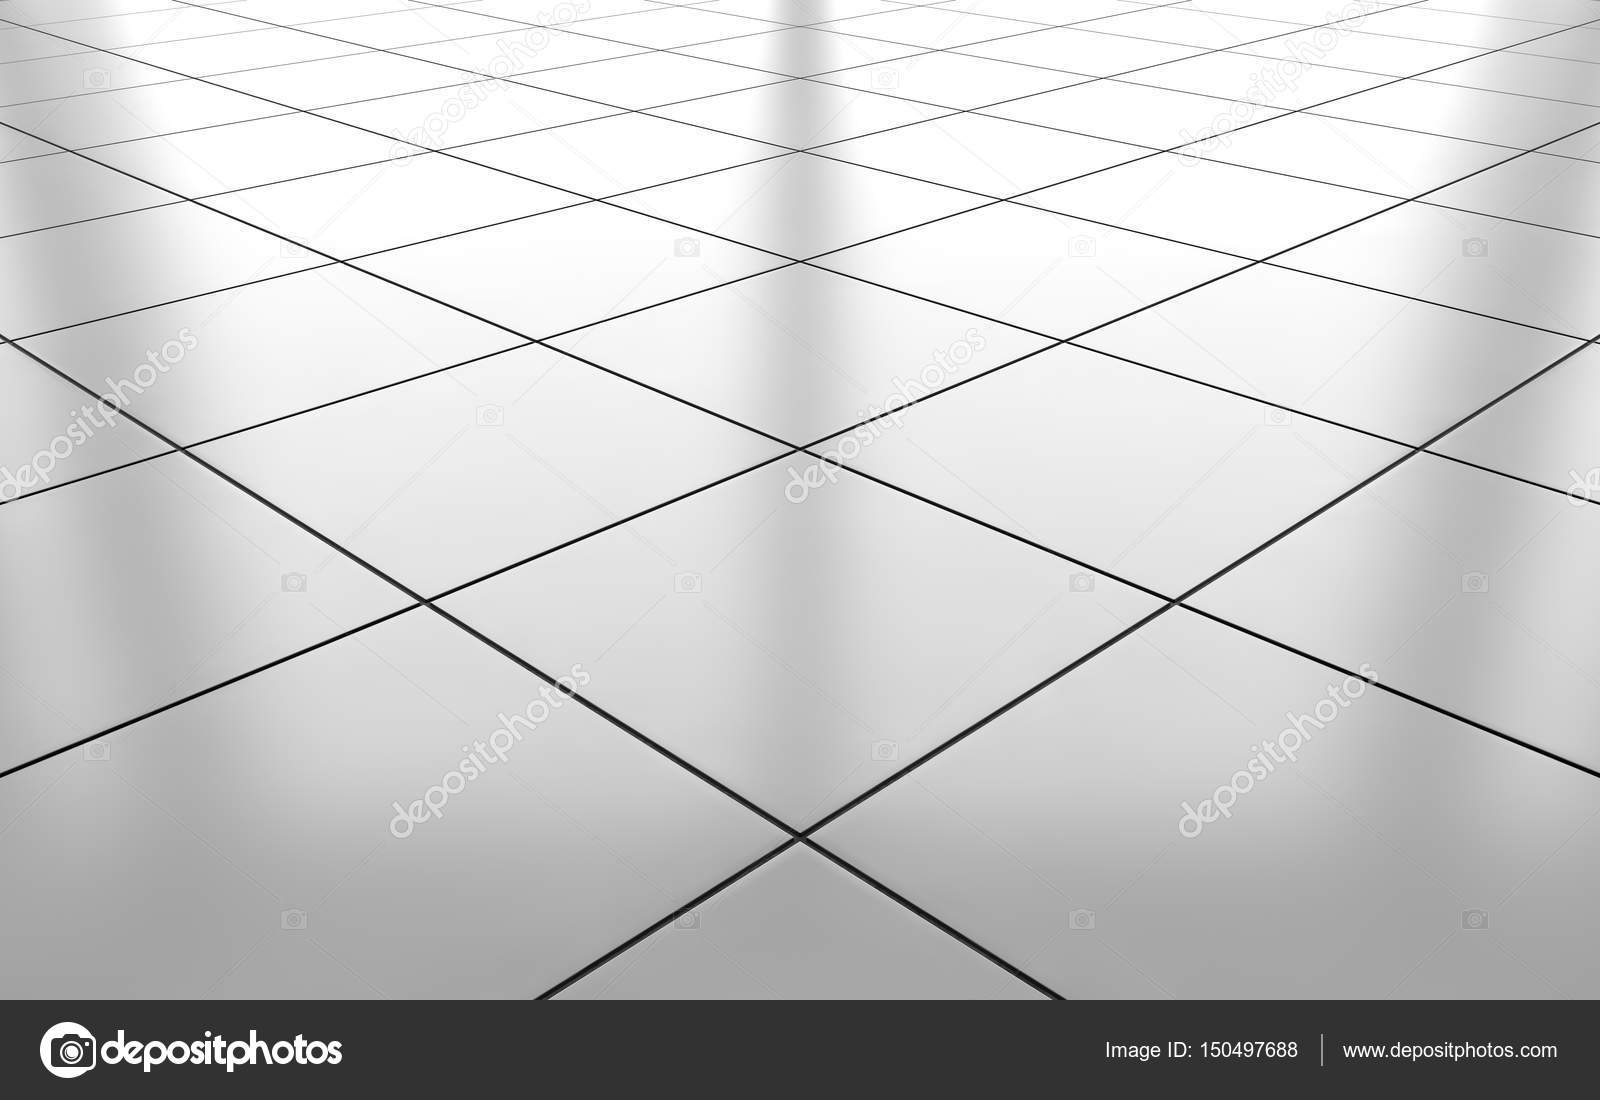 White glossy ceramic tile floor background 3d rendering stock white glossy ceramic tile floor background 3d rendering stock photo 150497688 doublecrazyfo Image collections